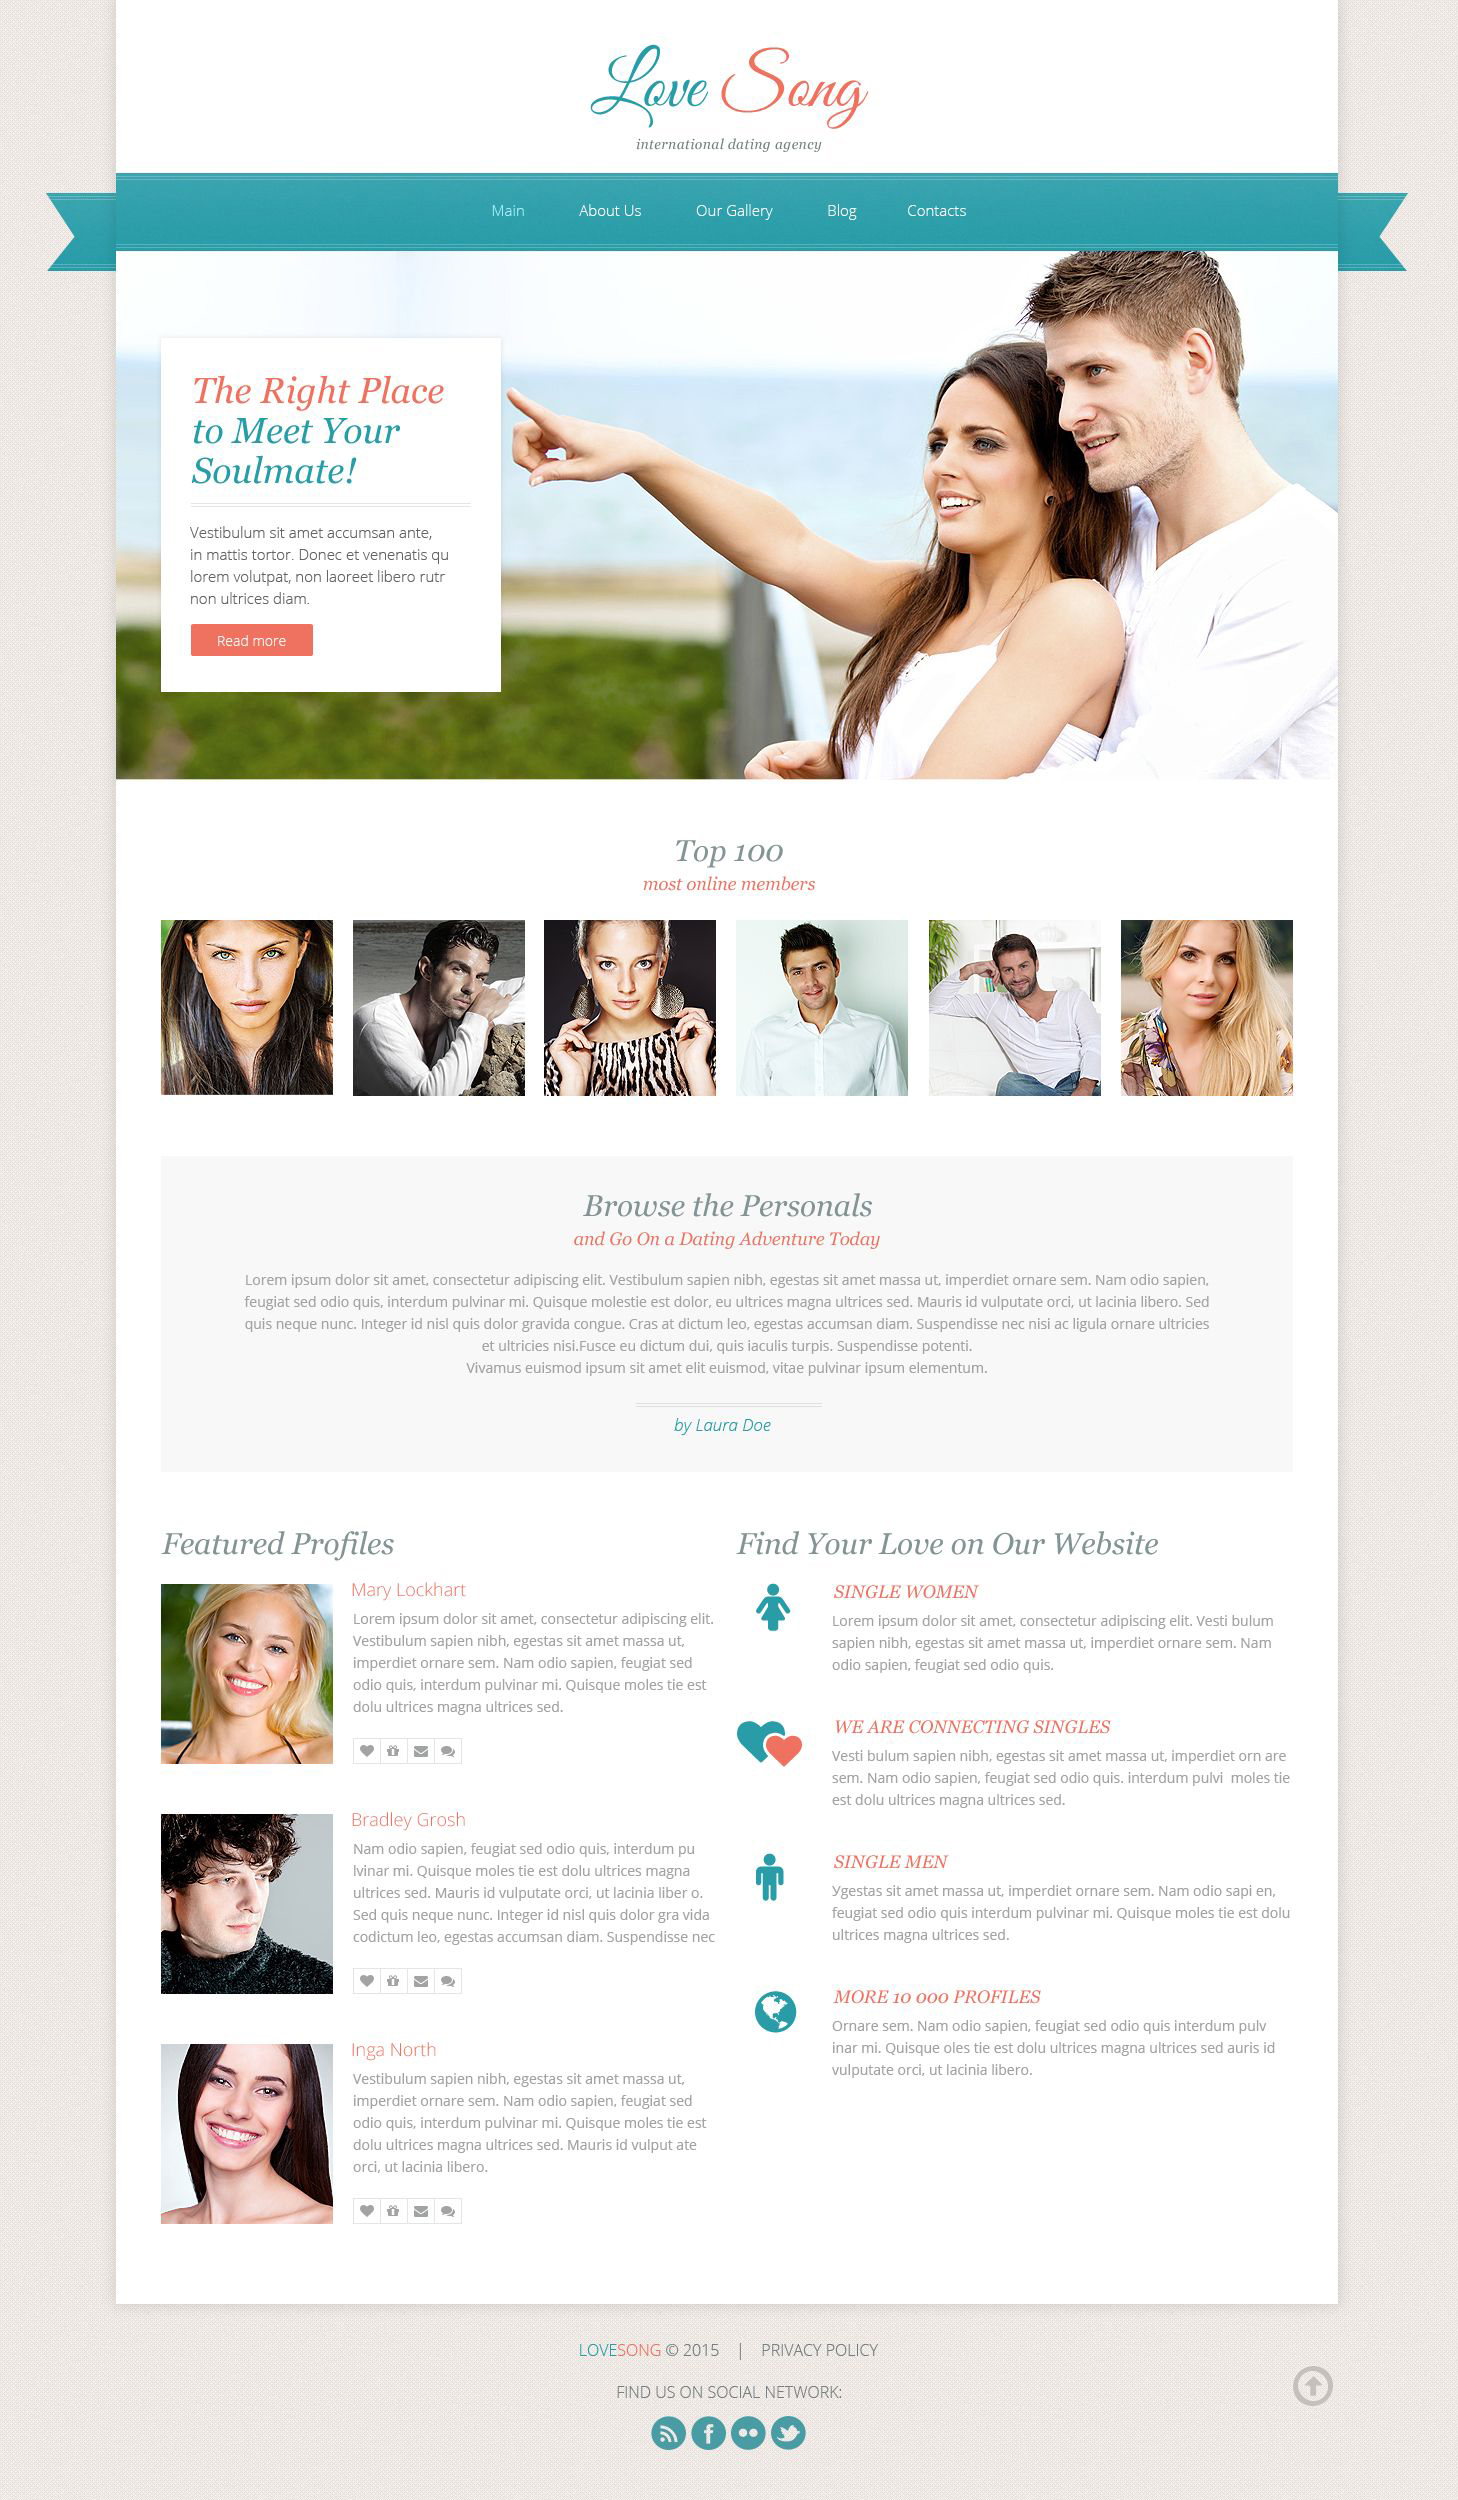 The Love Song Dating Agency Responsive Javascript Animated Design 53650, one of the best website templates of its kind (dating, most popular), also known as Love Song dating agency website template, wedding website template, swan website template, rings website template, page website template, photos website template, gallery website template, history website template, first website template, engagement website template, ceremony website template, rings website template, flowers website template, family website template, baby website template, friends website template, happiness website template, love website template, couple website template, partners website template, success website template, lover website template, sweetheart website template, honey website template, moon website template, marriage website template, husband website template, wife website template, information and related with Love Song dating agency, wedding, swan, rings, page, photos, gallery, history, first, engagement, ceremony, rings, flowers, family, baby, friends, happiness, love, couple, partners, success, lover, sweetheart, honey, moon, marriage, husband, wife, information, etc.